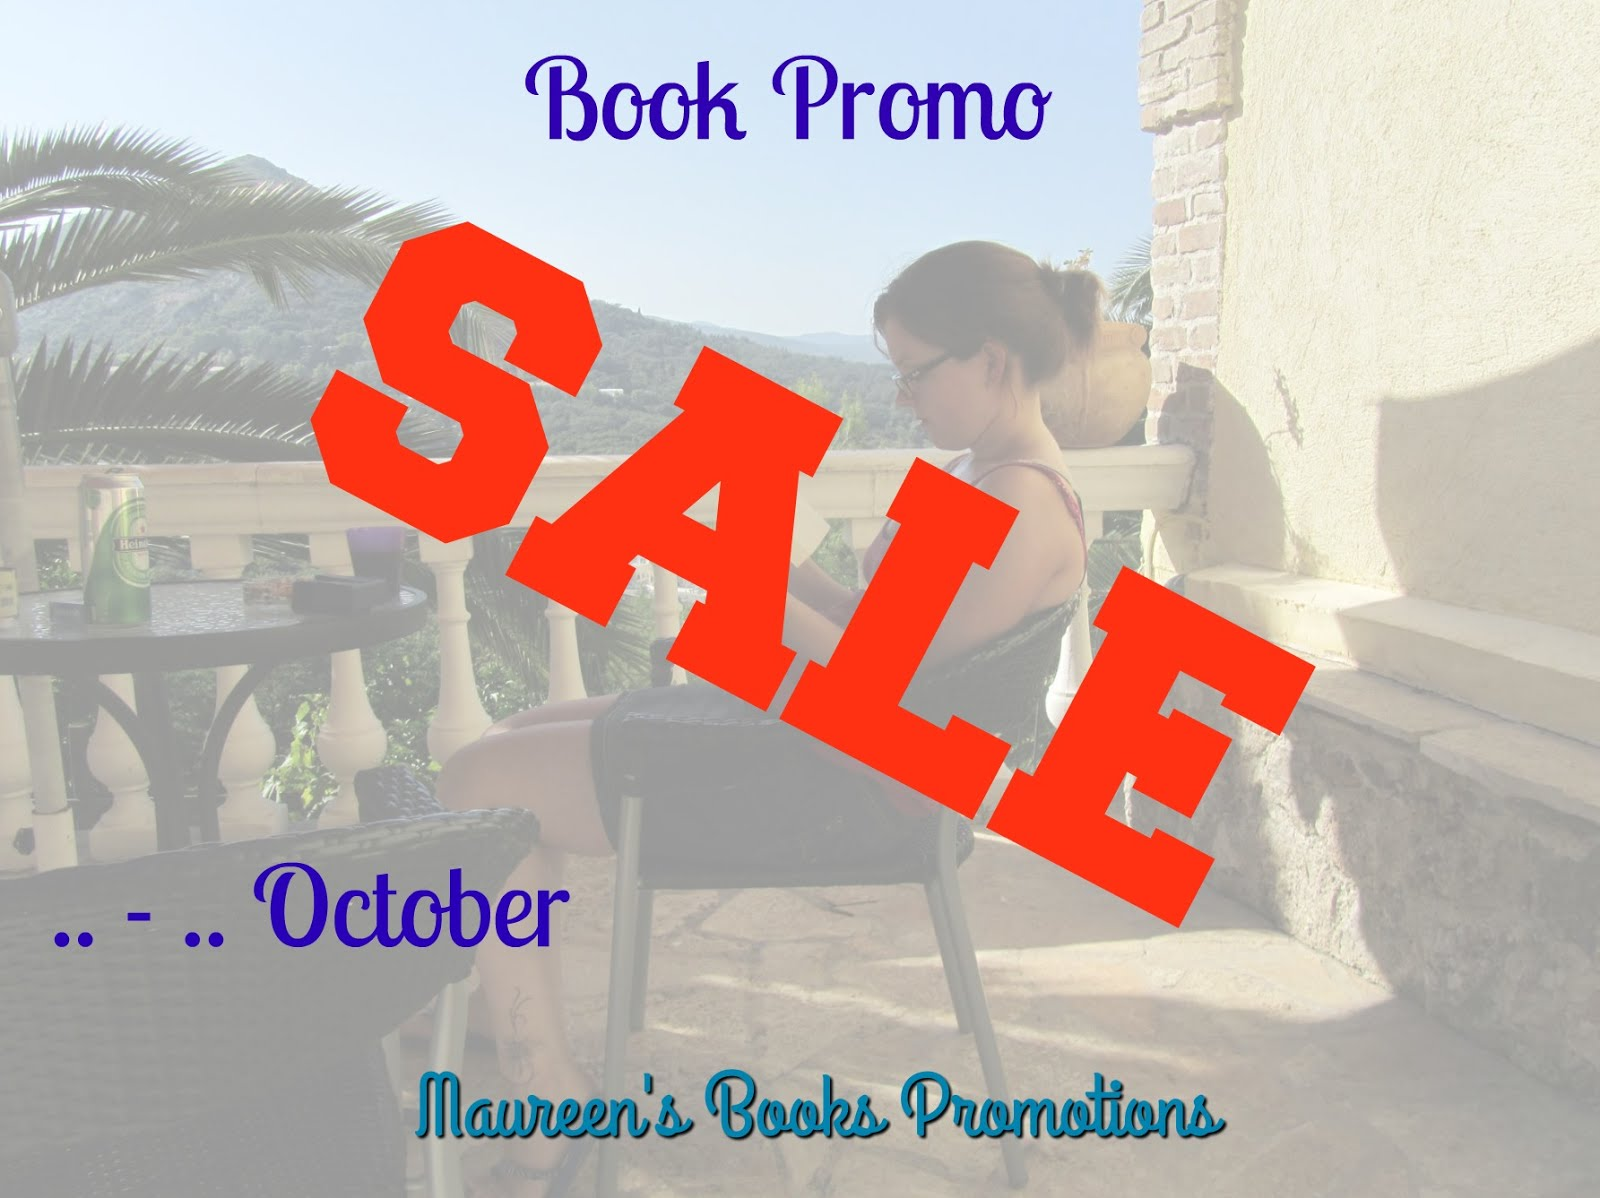 SALE: A Book Promo for half the price!! (Open till October 22nd)